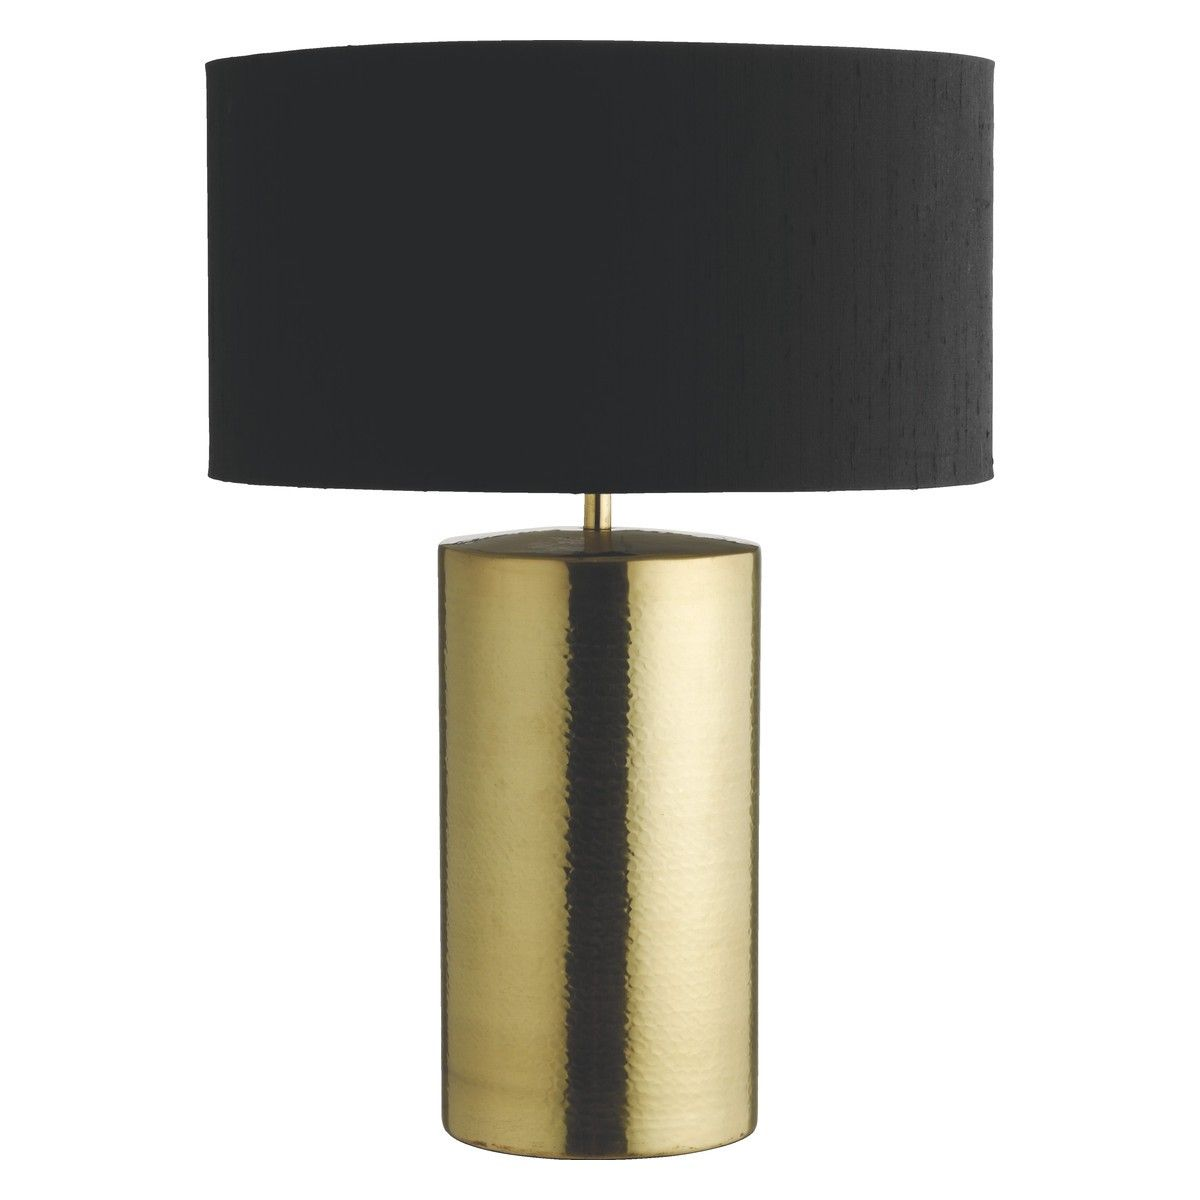 Margo Brass Table Lamp Base Buy Now At Habitat Uk Light